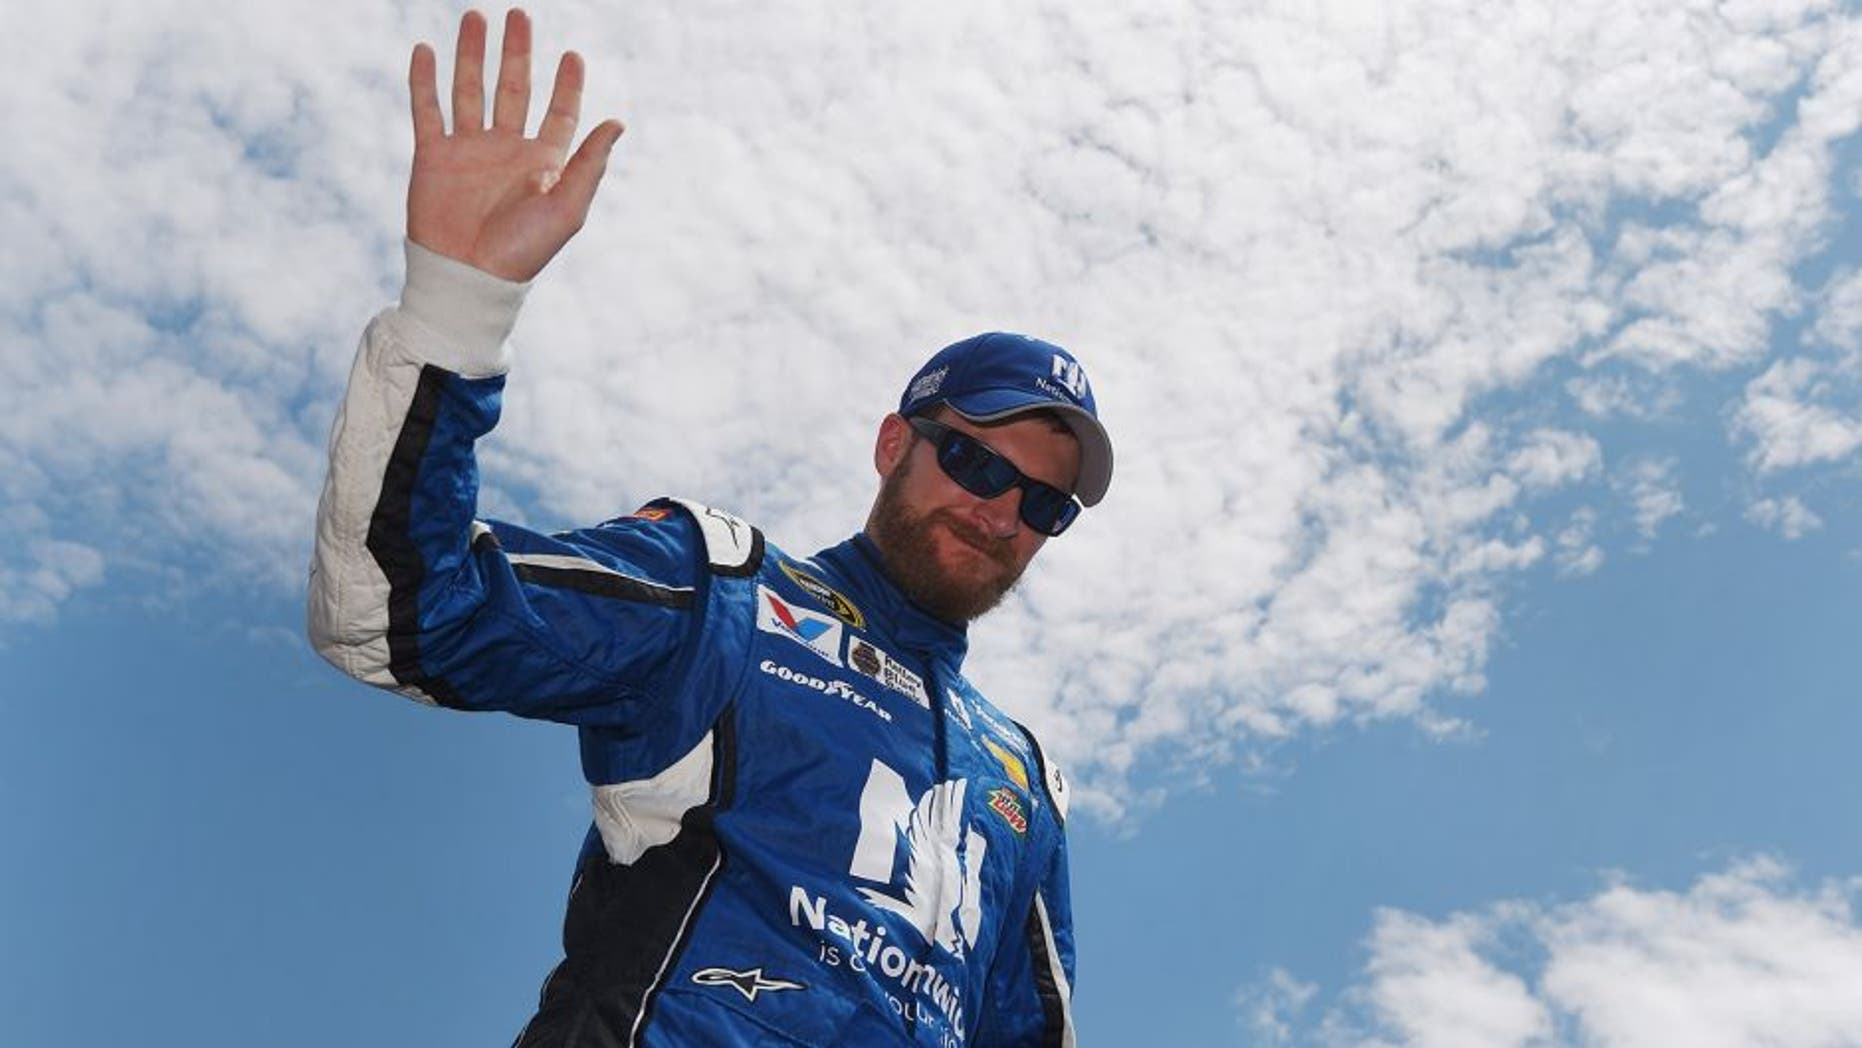 LOUDON, NH - JULY 19: Dale Earnhardt Jr., driver of the #88 Nationwide Chevrolet, is introduced prior to the NASCAR Sprint Cup Series 5-Hour ENERGY 301 at New Hampshire Motor Speedway on July 19, 2015 in Loudon, New Hampshire. (Photo by Rainier Ehrhardt/Getty Images)